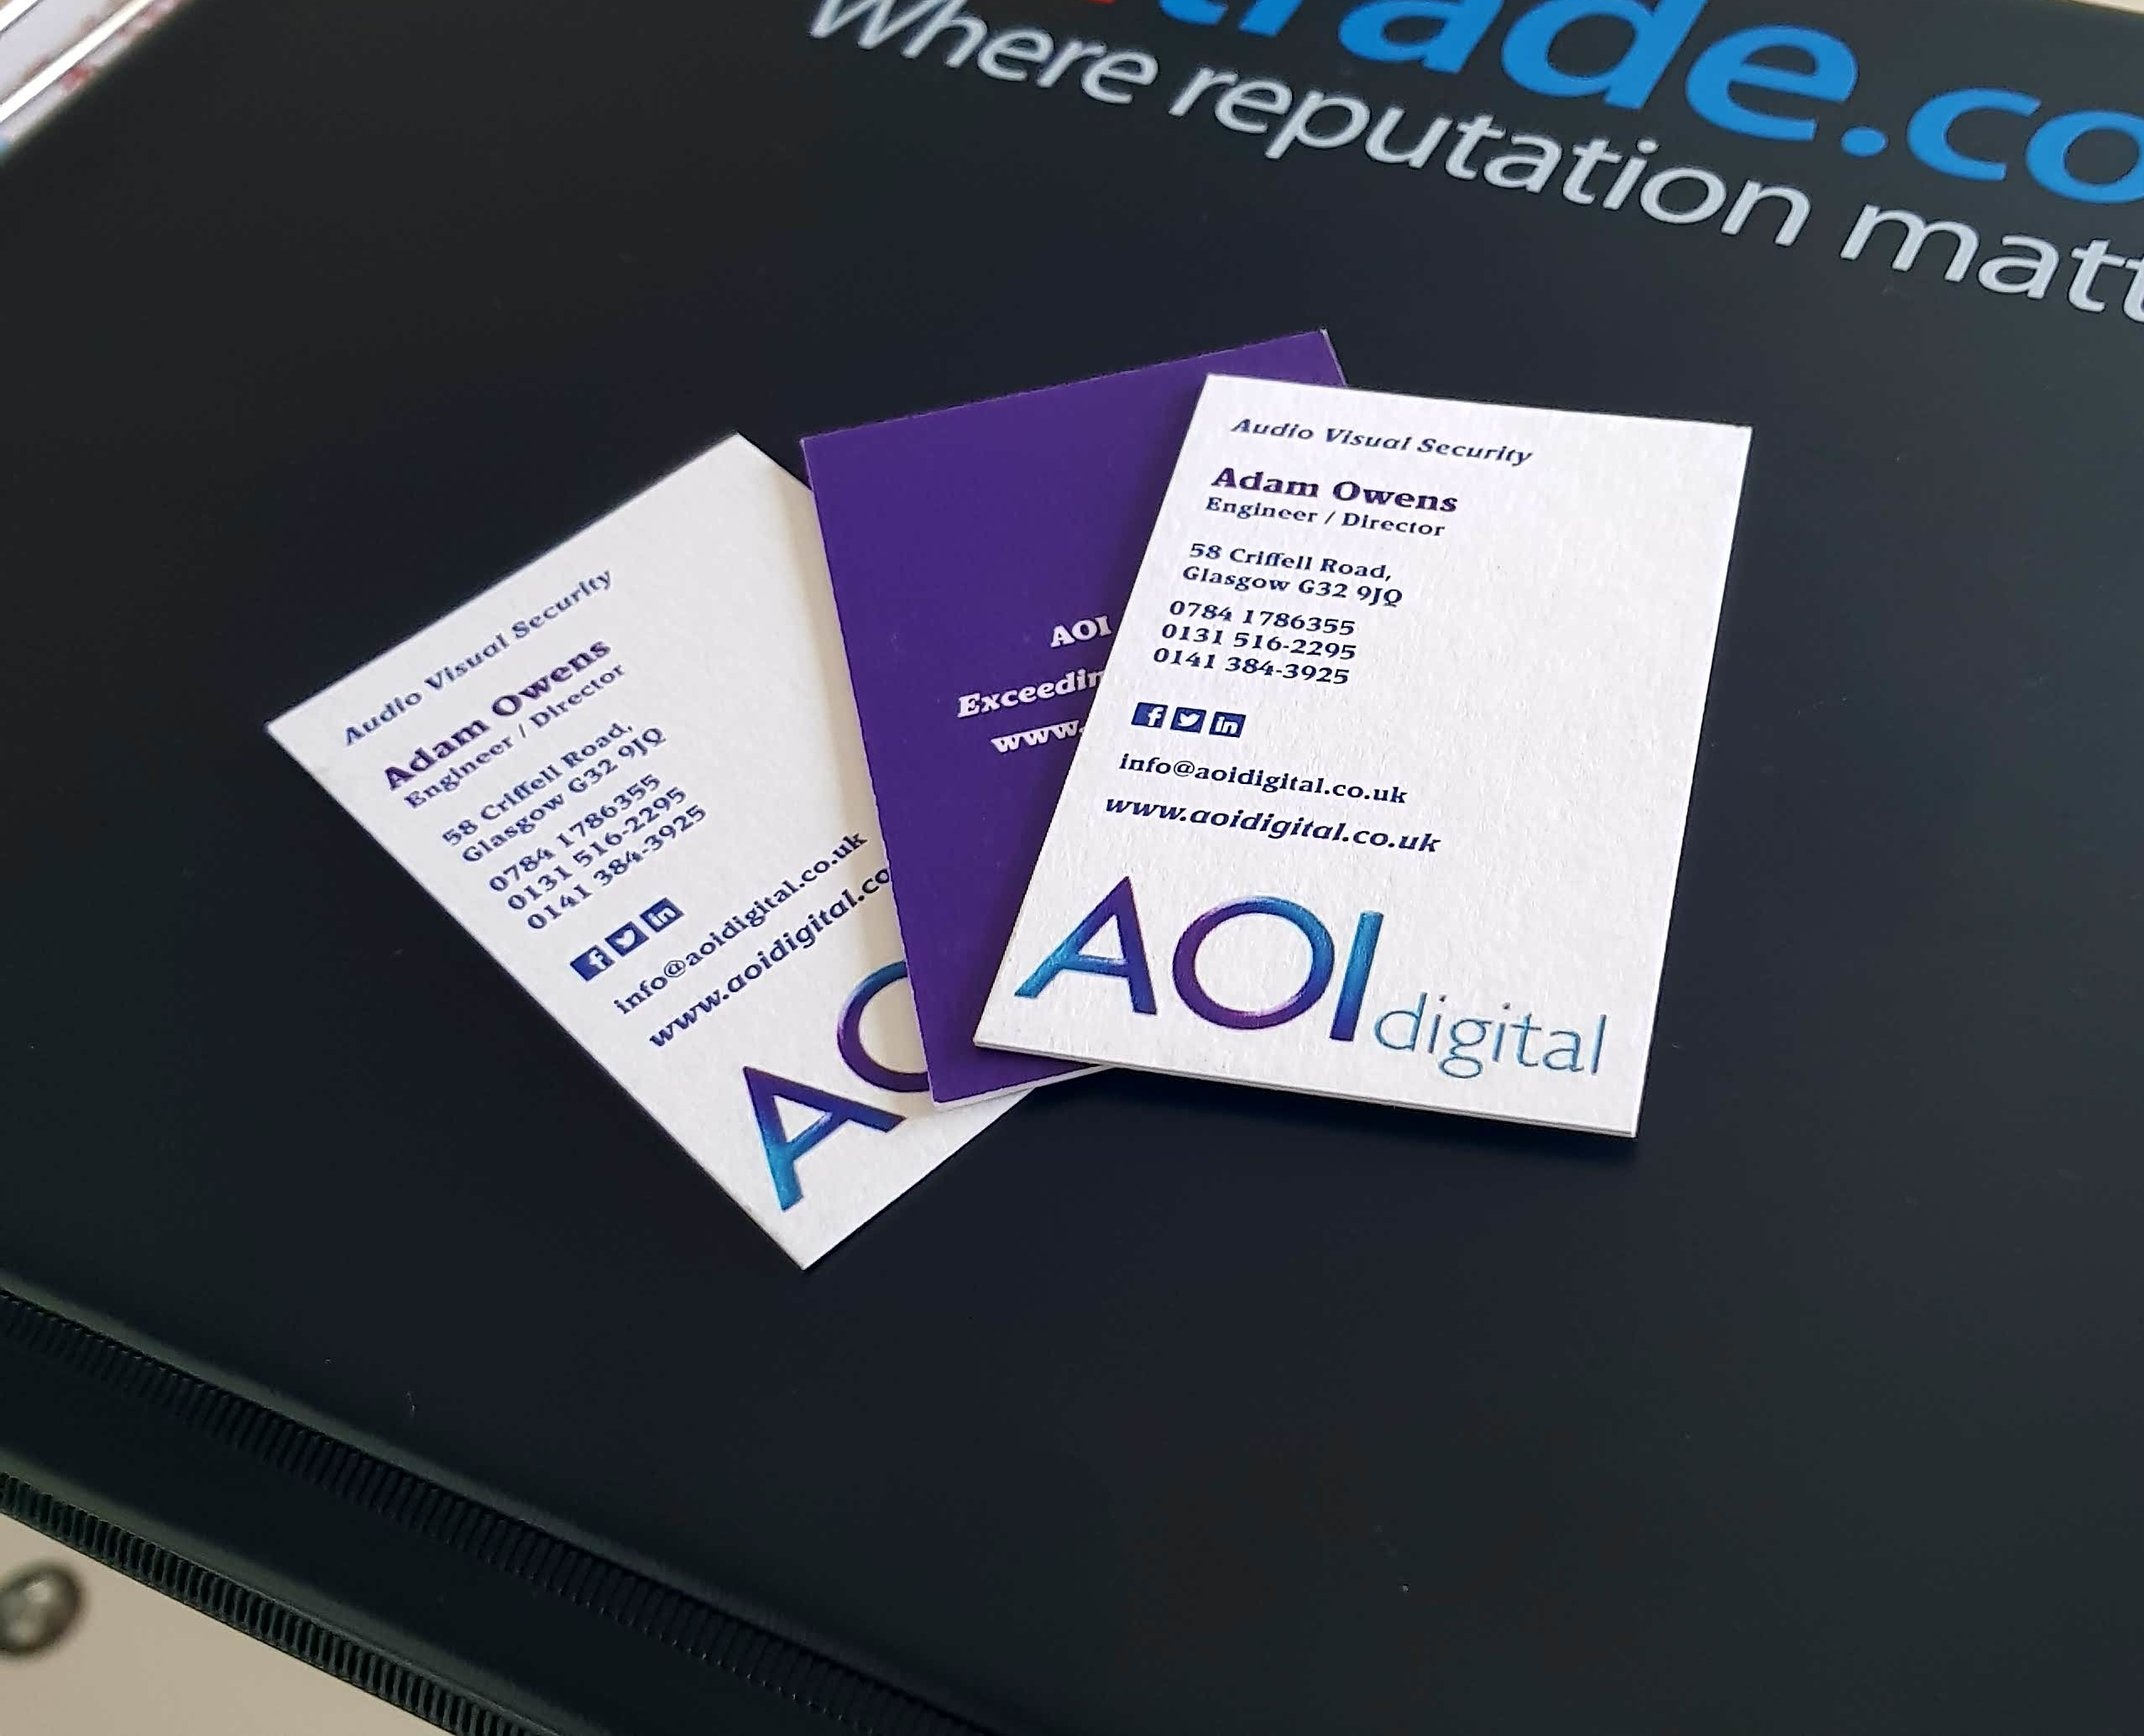 AOI strive to provide first class service and our customer care is unparalleled, to back this up we give feedback forms to all of our clients make sure high industry standards are achieved -